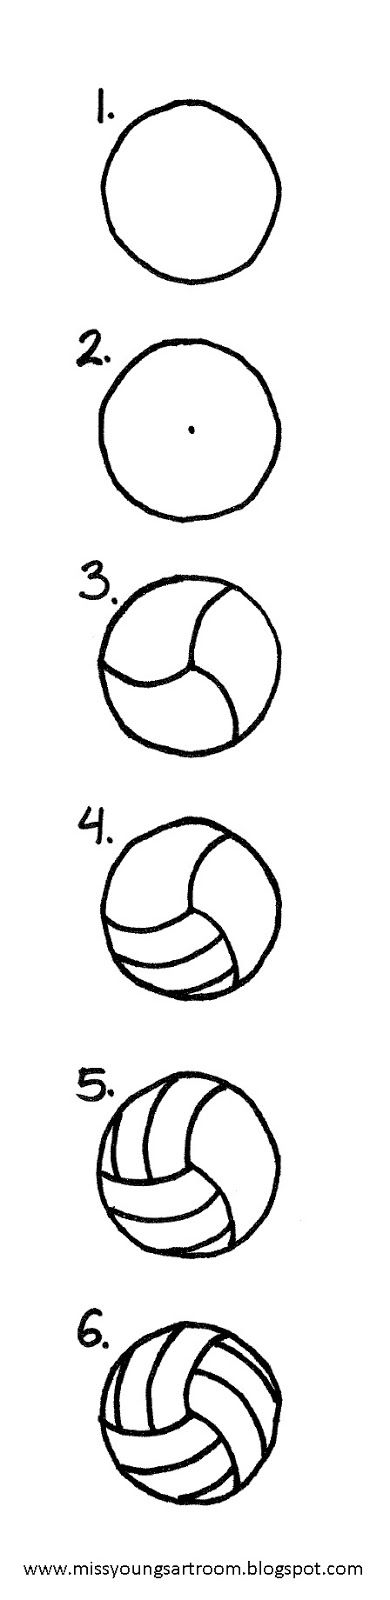 Miss Young's Art Room: How to Draw a Volleyball. Instead of a volleyball, I envision the sections painted with different colors